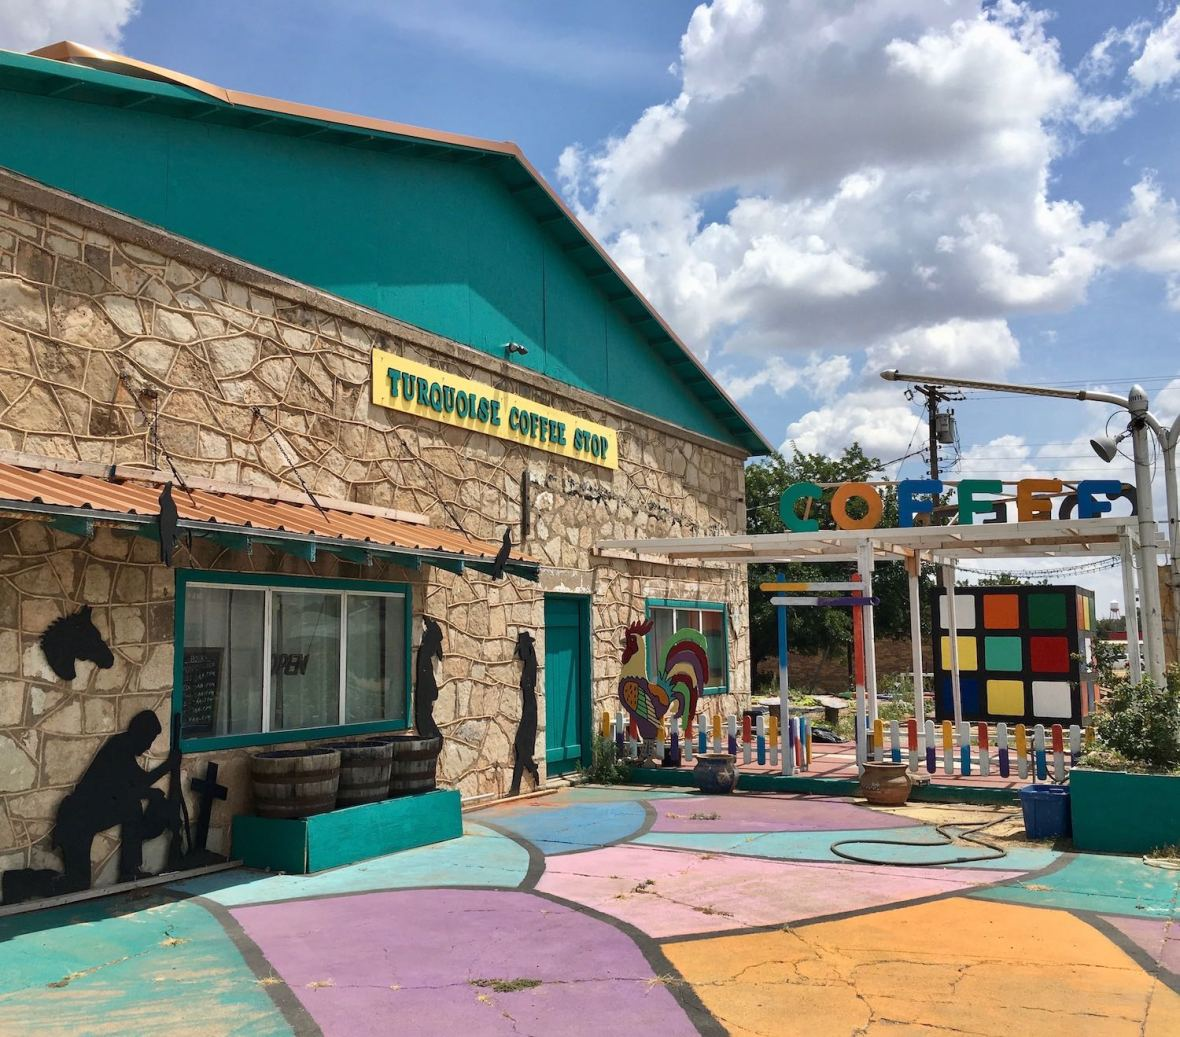 Turquoise Coffee Stop in Chillicothe, Texas